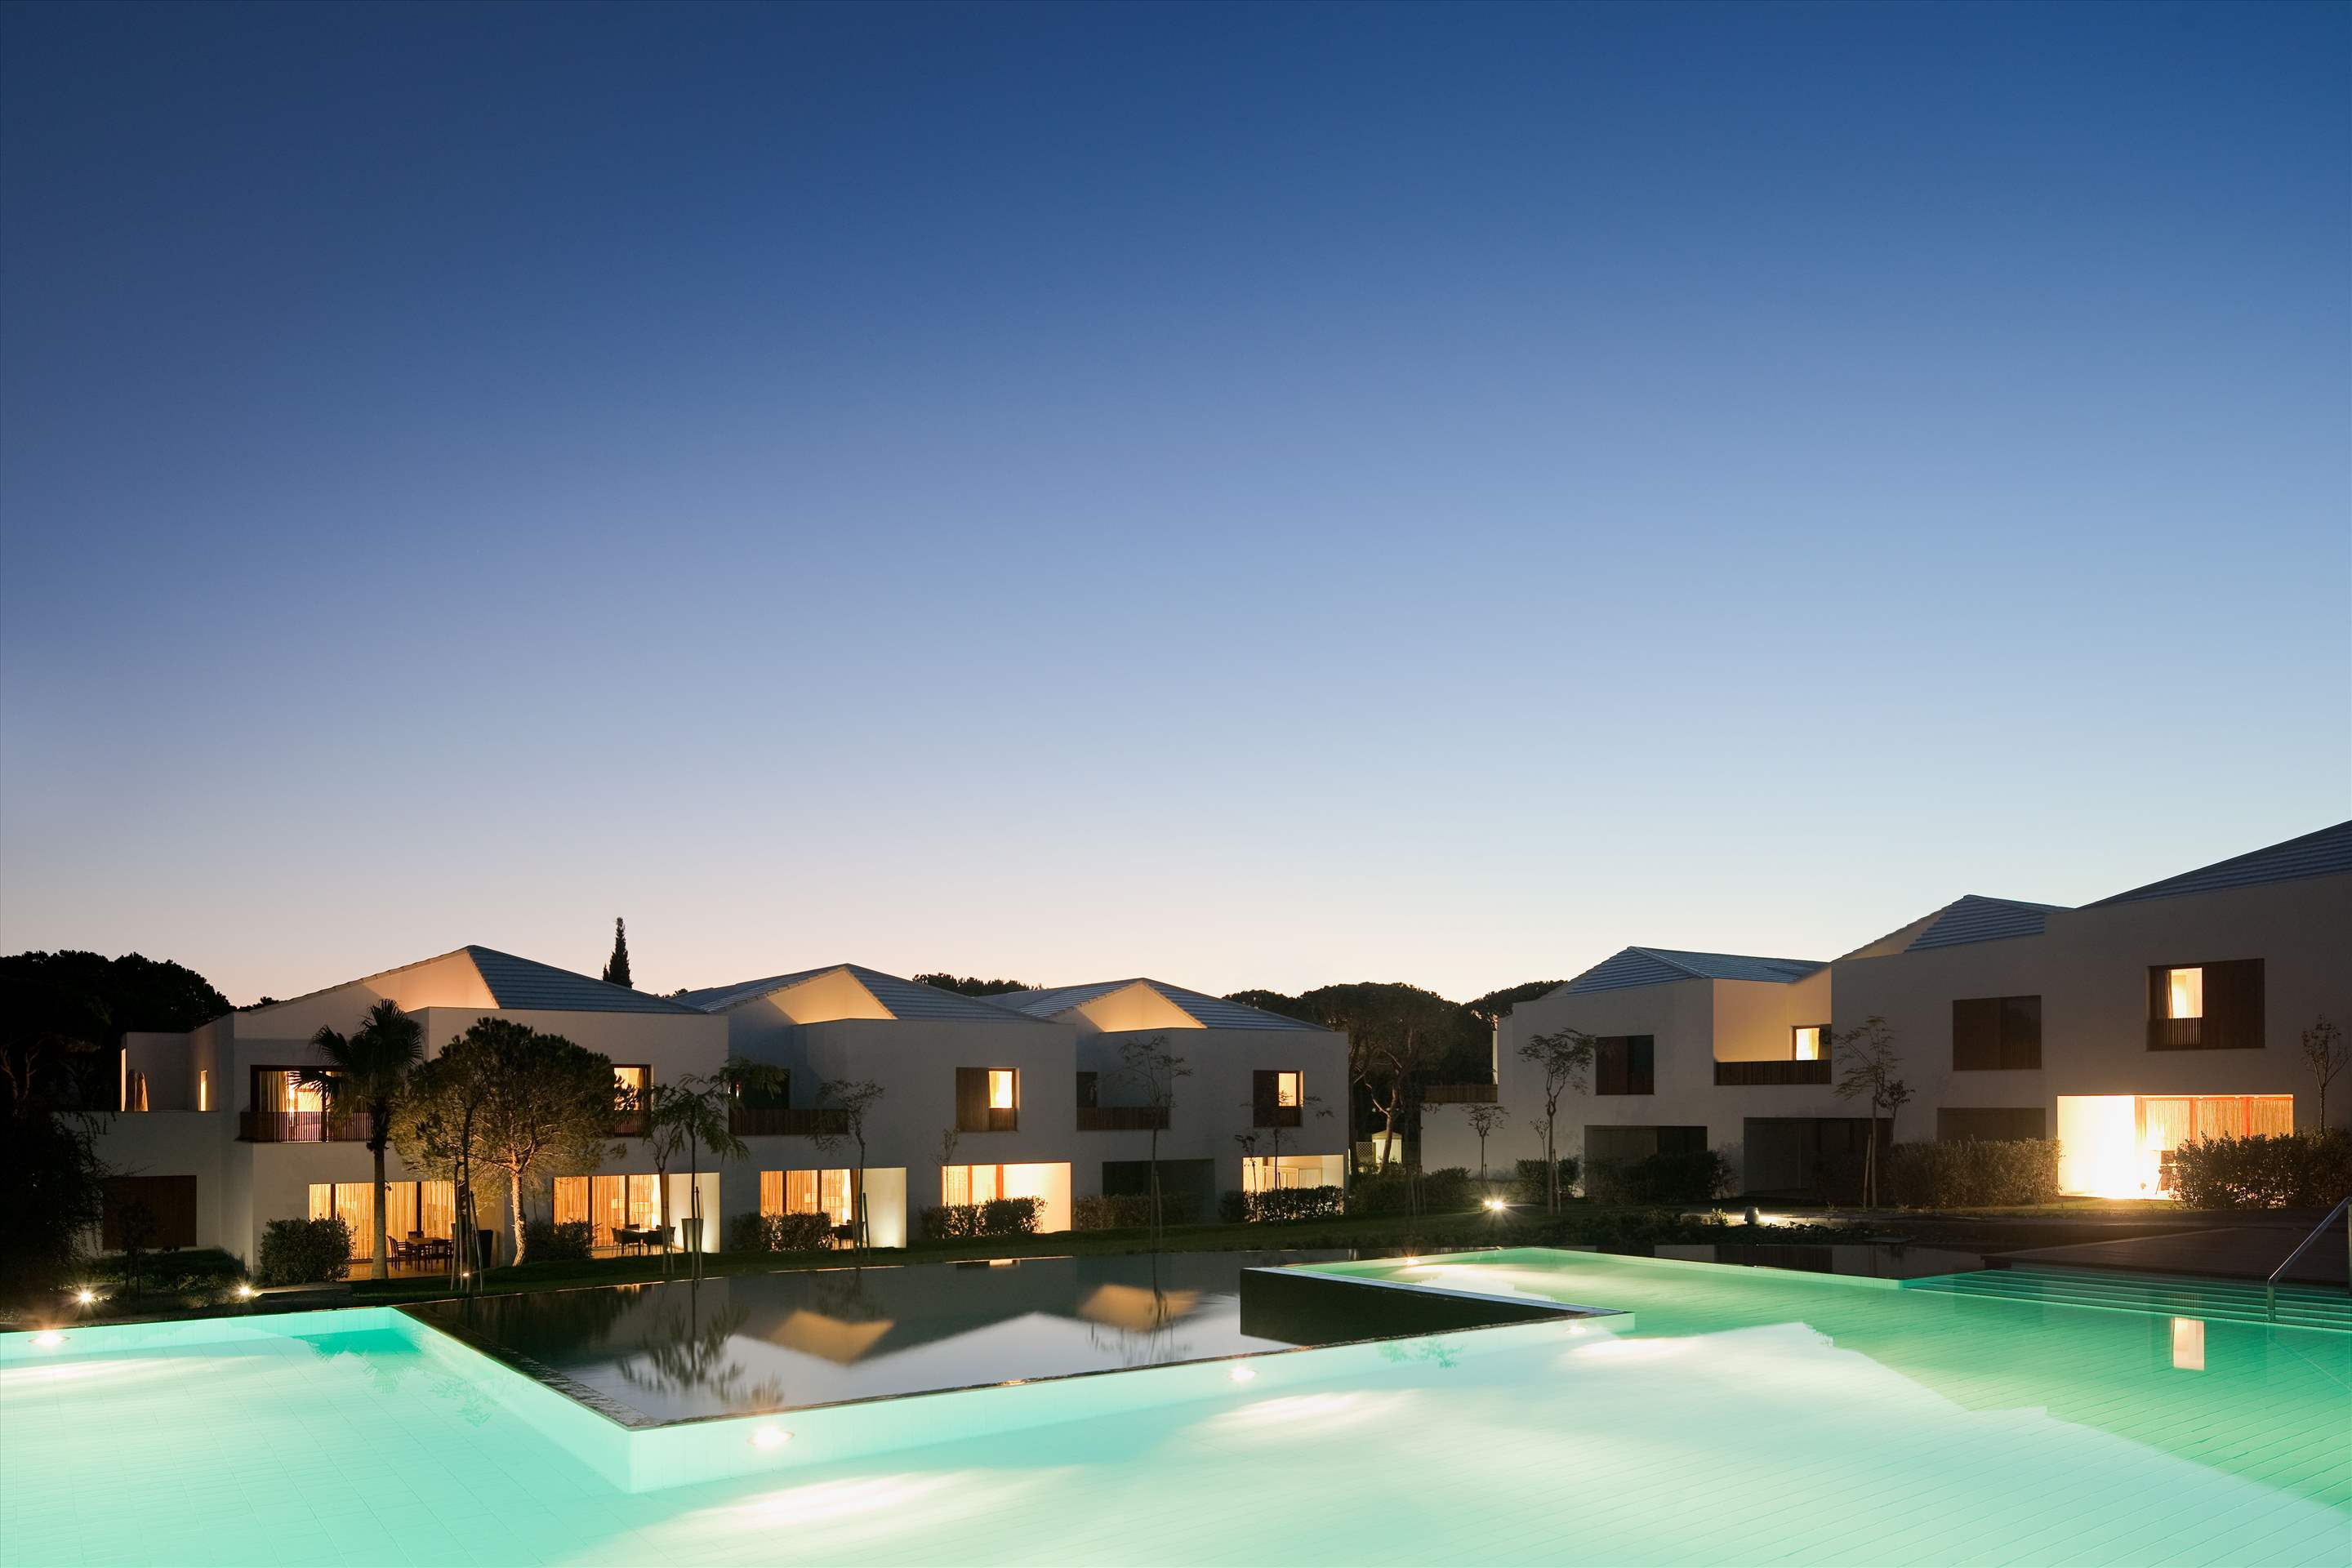 Pine Cliffs Terraces, 4 Bedroom, room only basis, 4 bedroom villa in Pine Cliffs Resort, Algarve